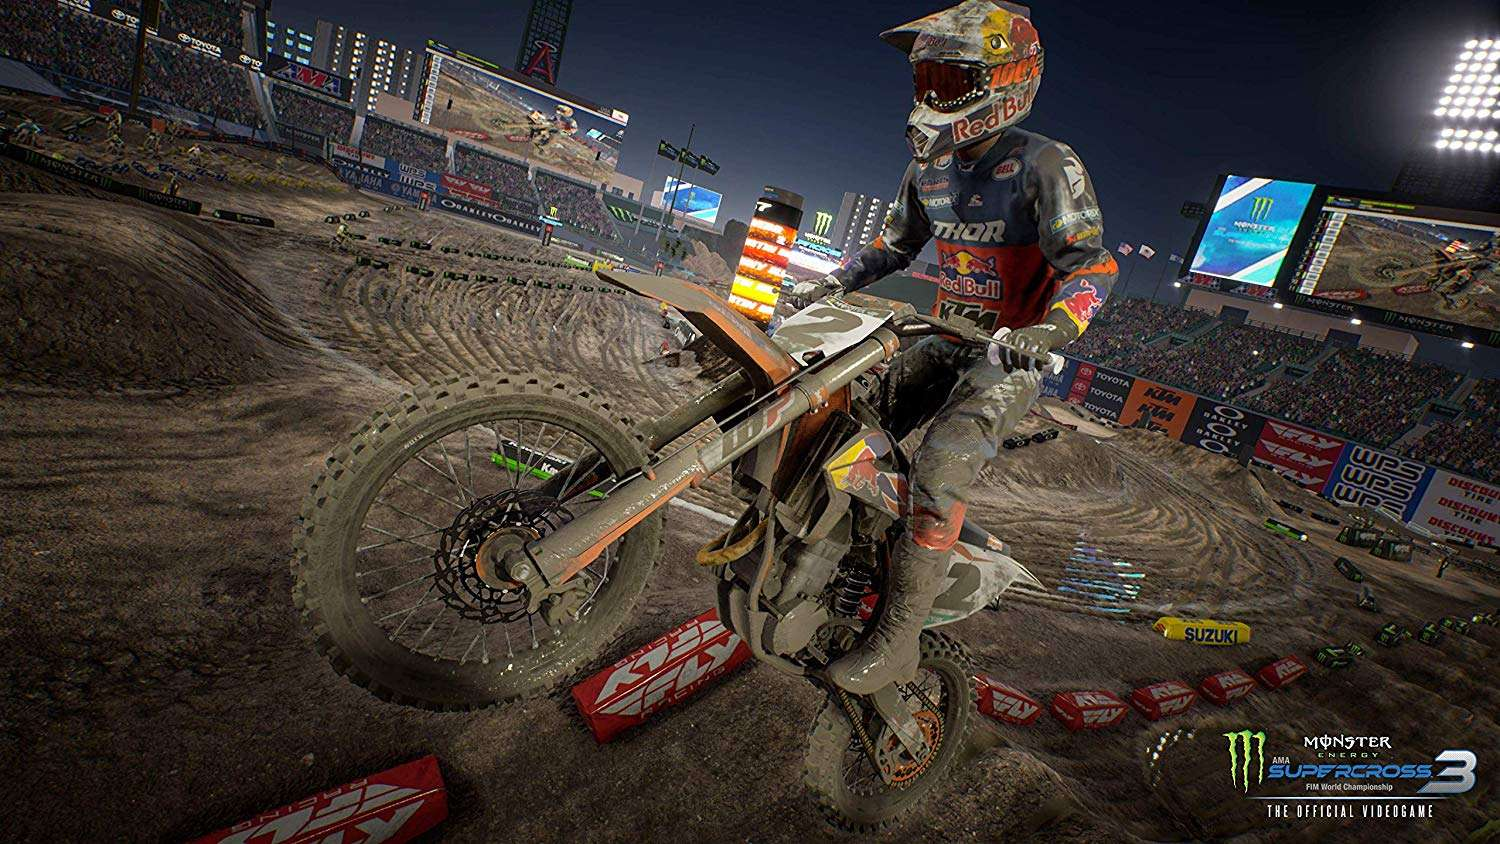 Monster Energy Supercross: The Official Videogame 3 #4